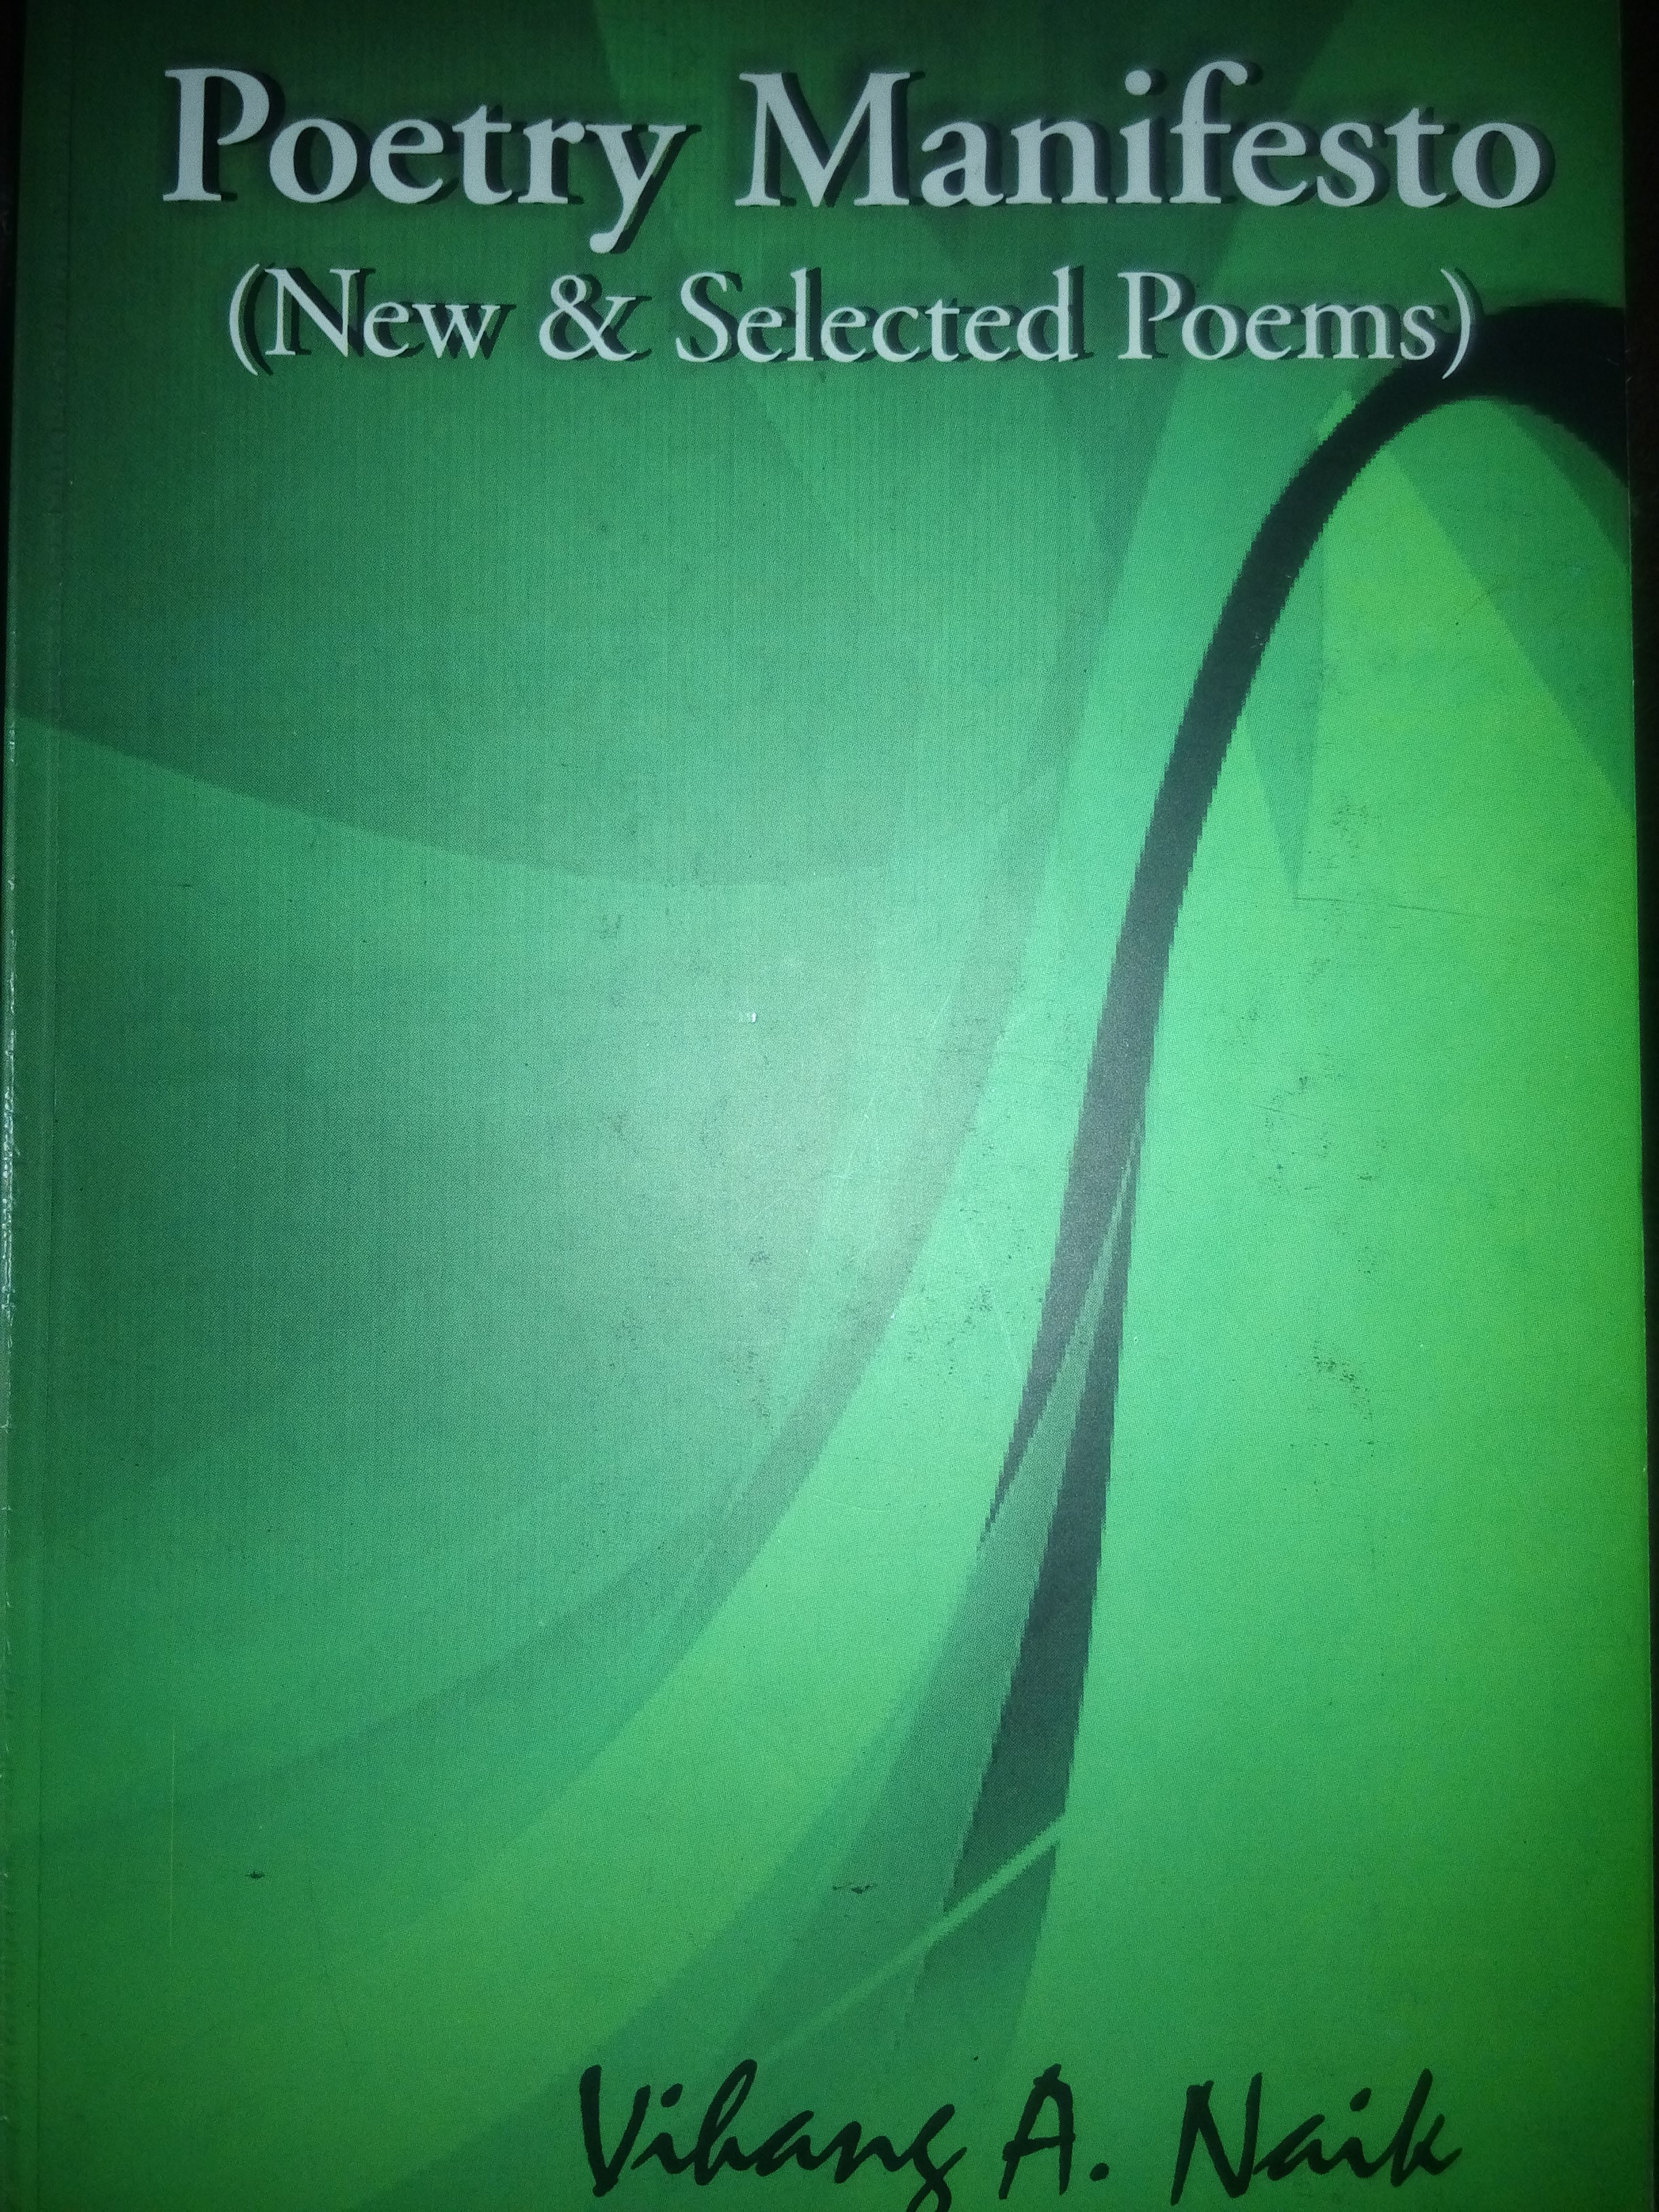 Dr snnghbook review poetry manifesto the achievers journal poetry izmirmasajfo